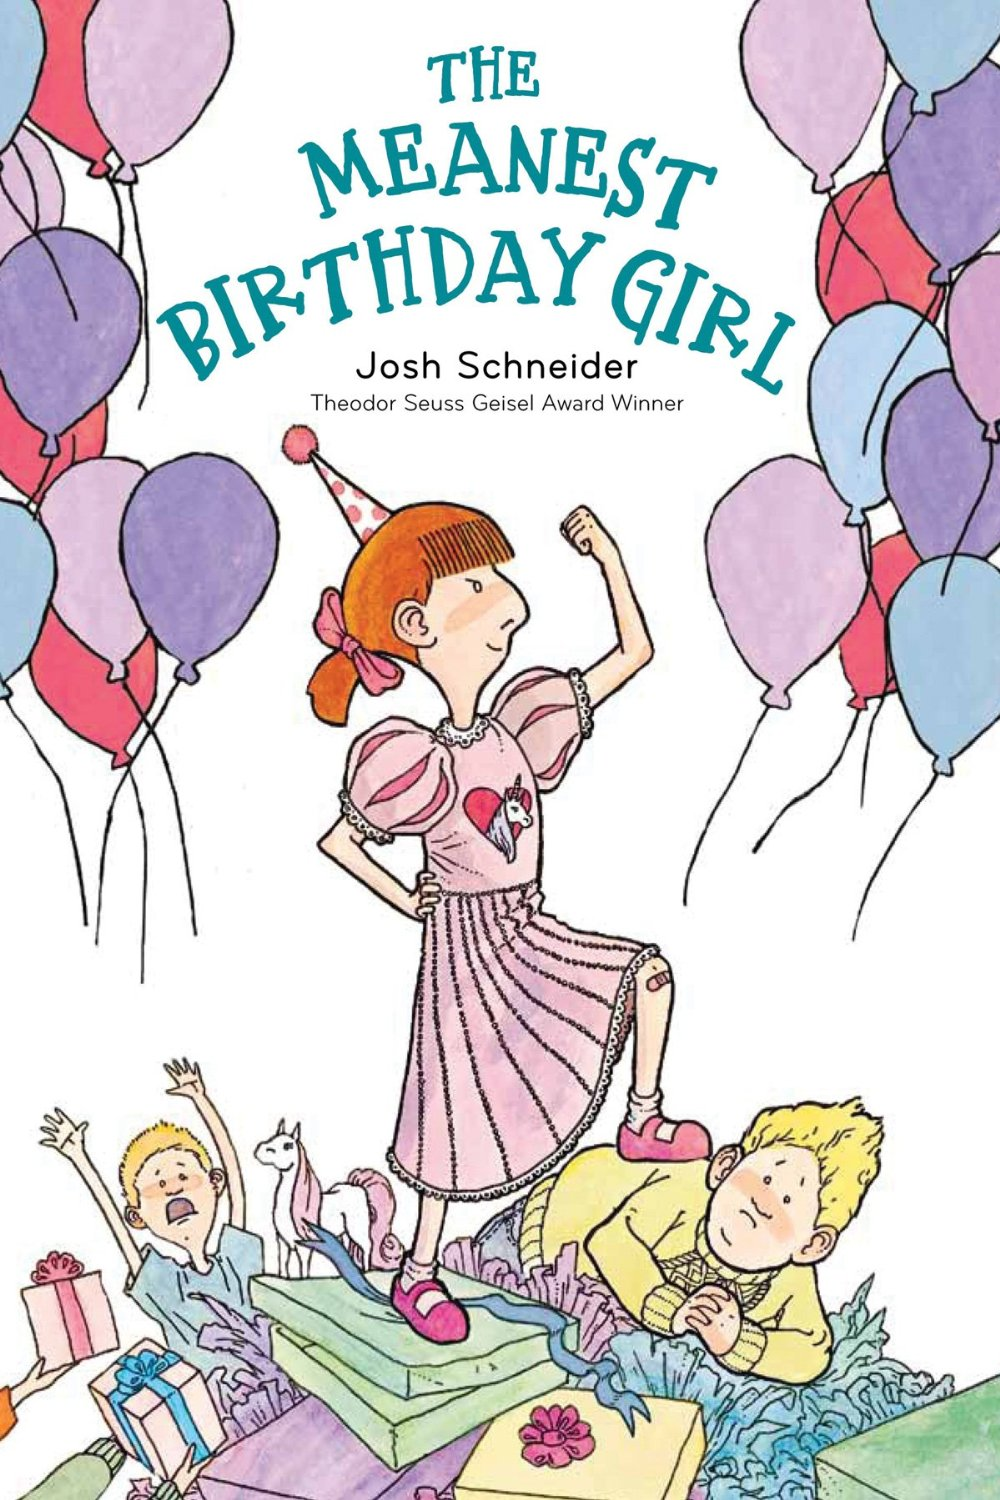 Schneider, Josh 2013_05 - THE MEANEST BIRTHDAY GIRL - PB - RLM PR.jpg